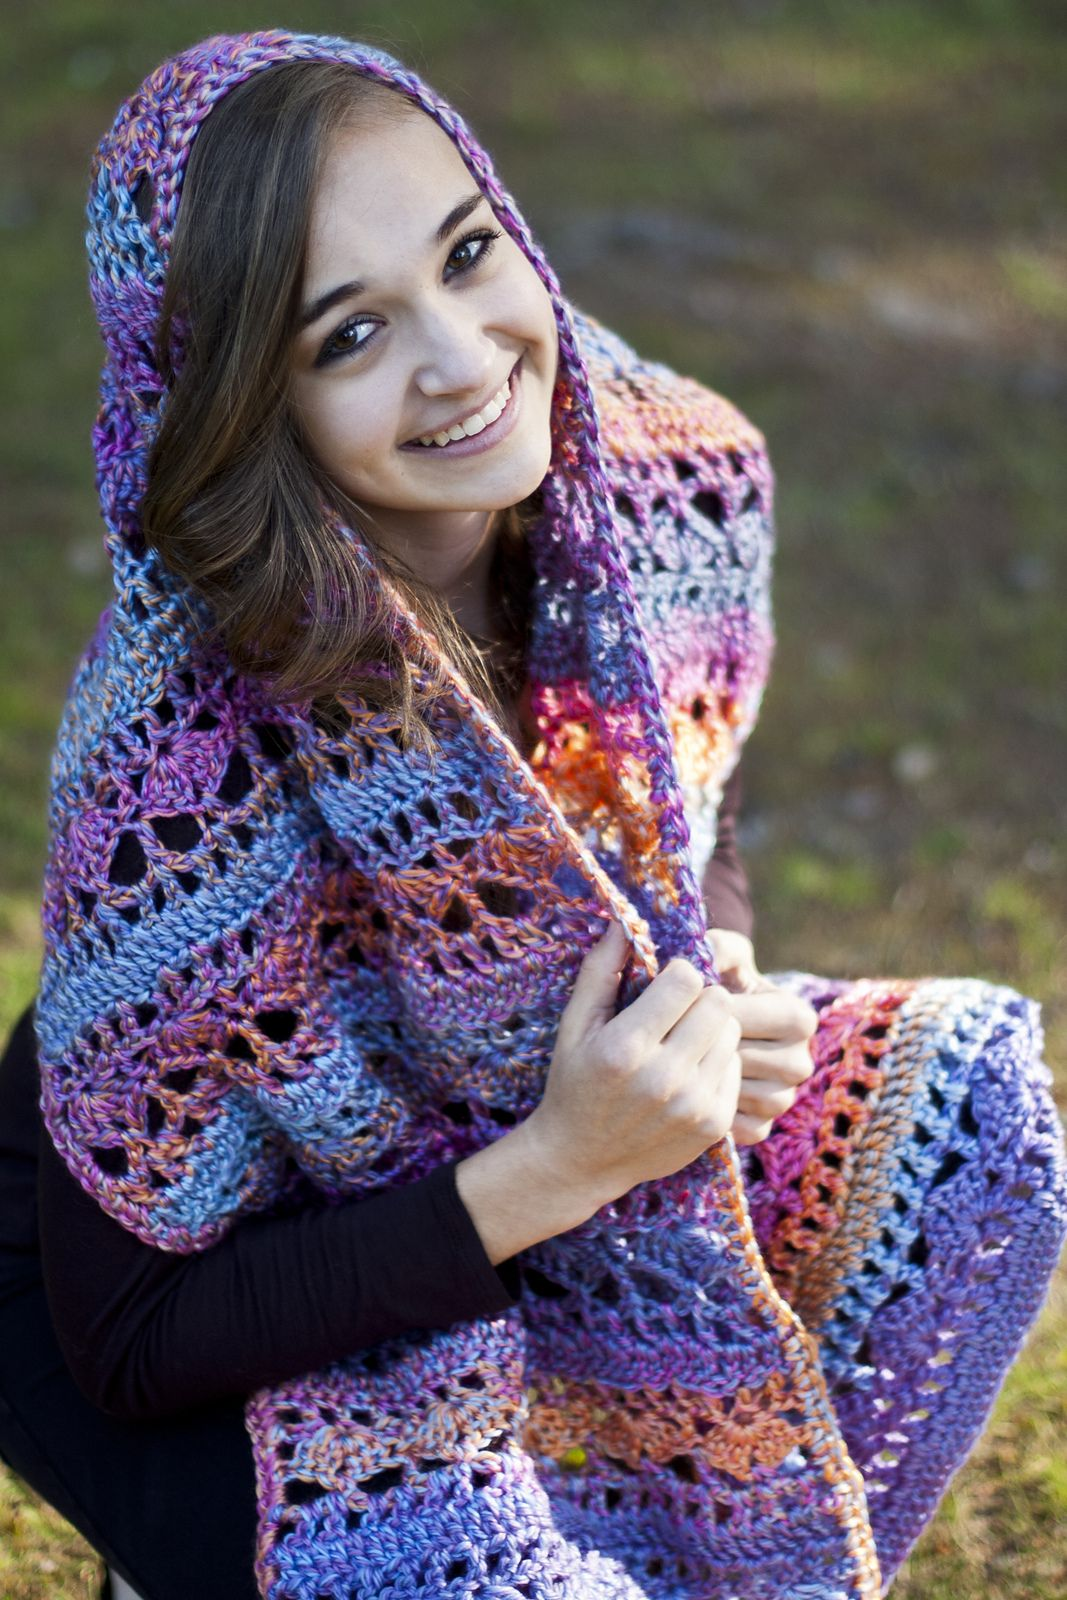 Ravelry: Colorful Hugs Prayer Shawl by Susie Bonell | Crochet items ...